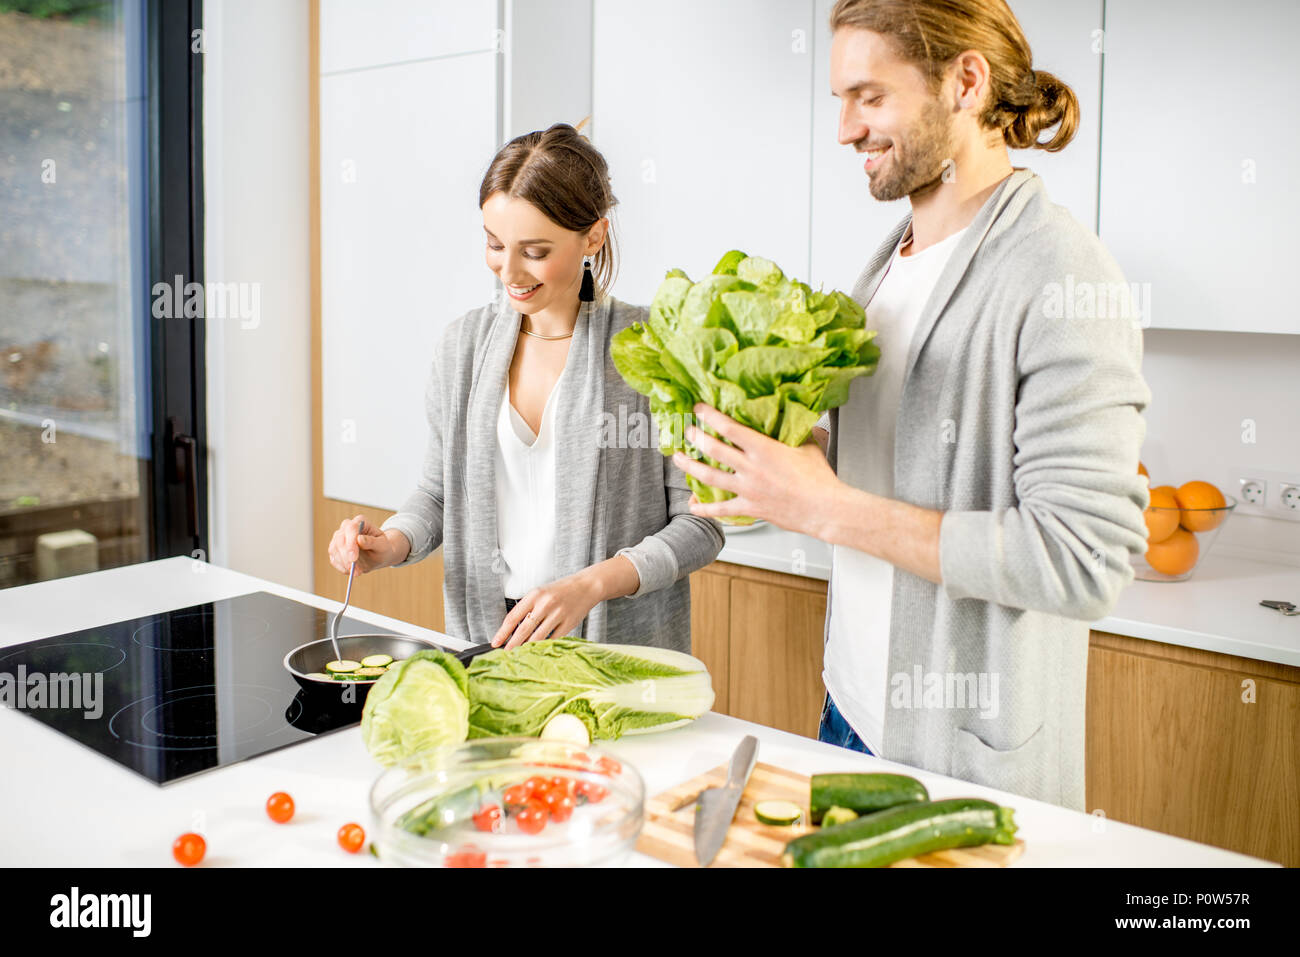 Couple cooking food at the kitchen home - Stock Image